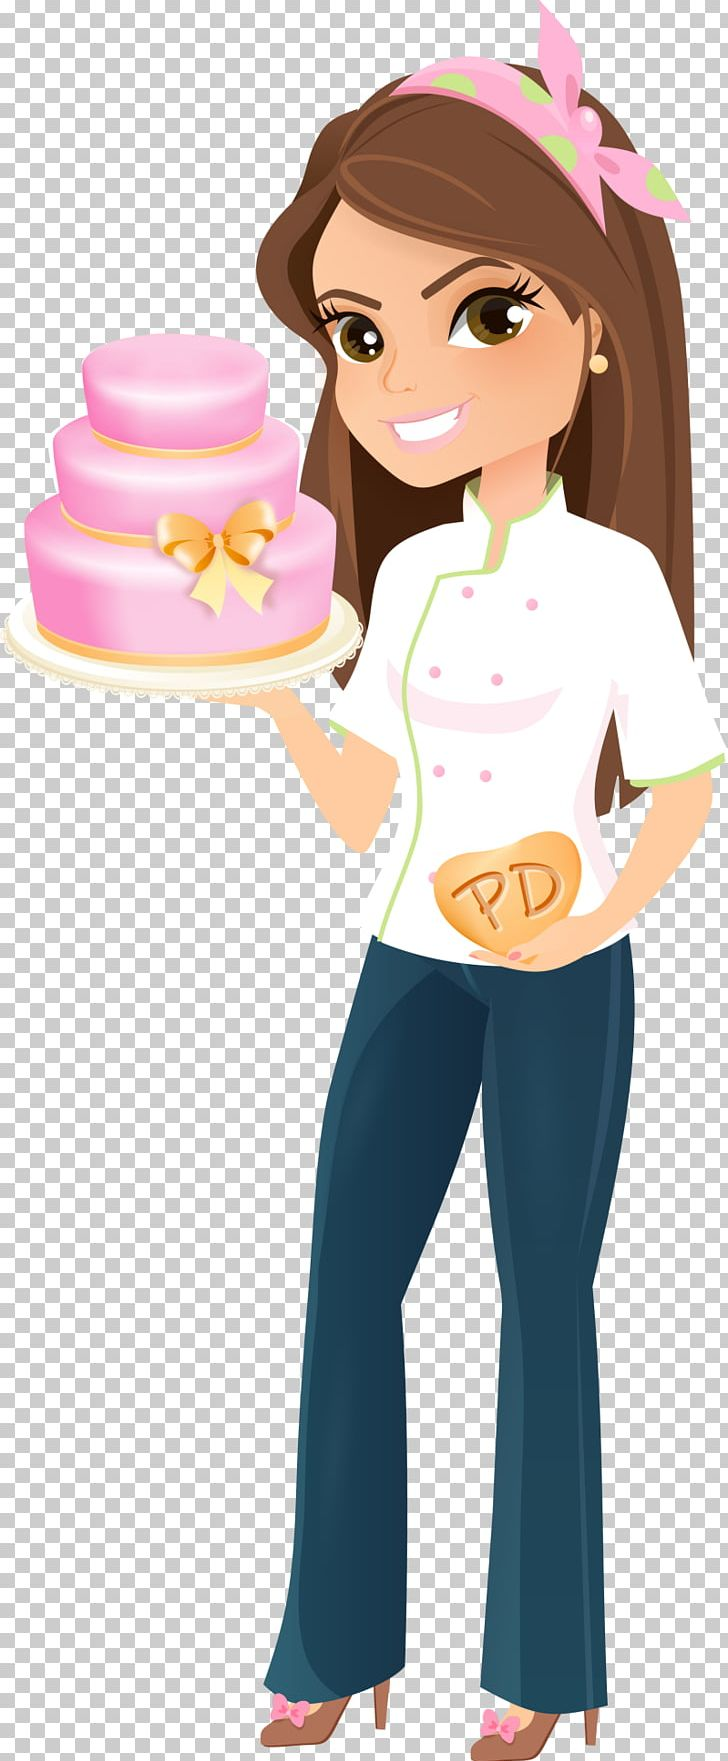 Birthday Cake Confectionery Store Mascot PNG, Clipart, Arm.